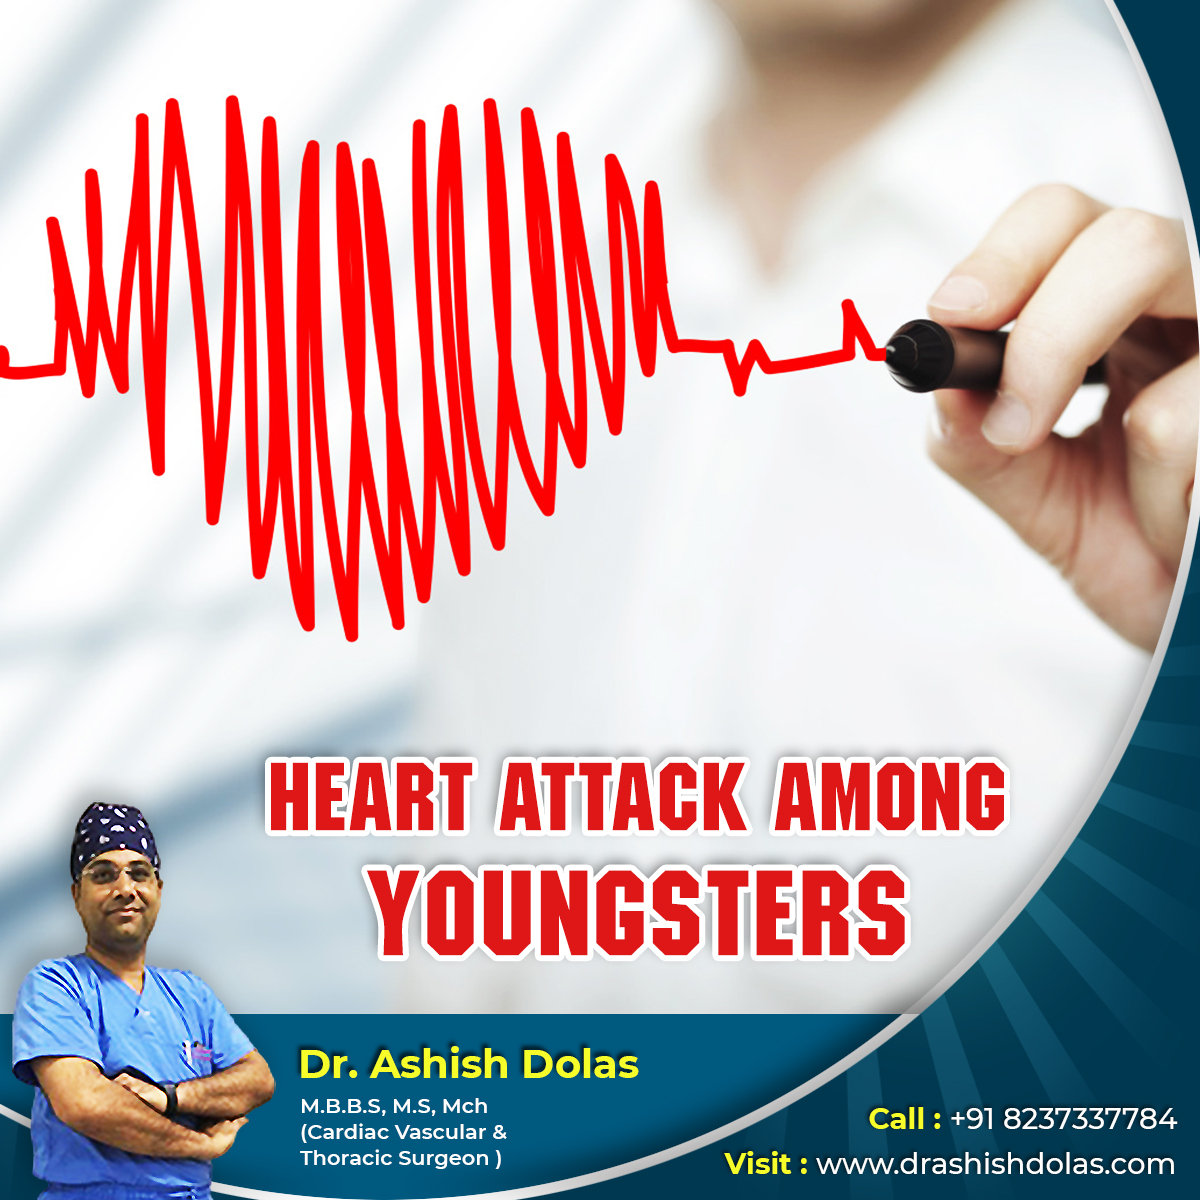 Heart Attack among Youngsters_Dr. Ashish Dolas